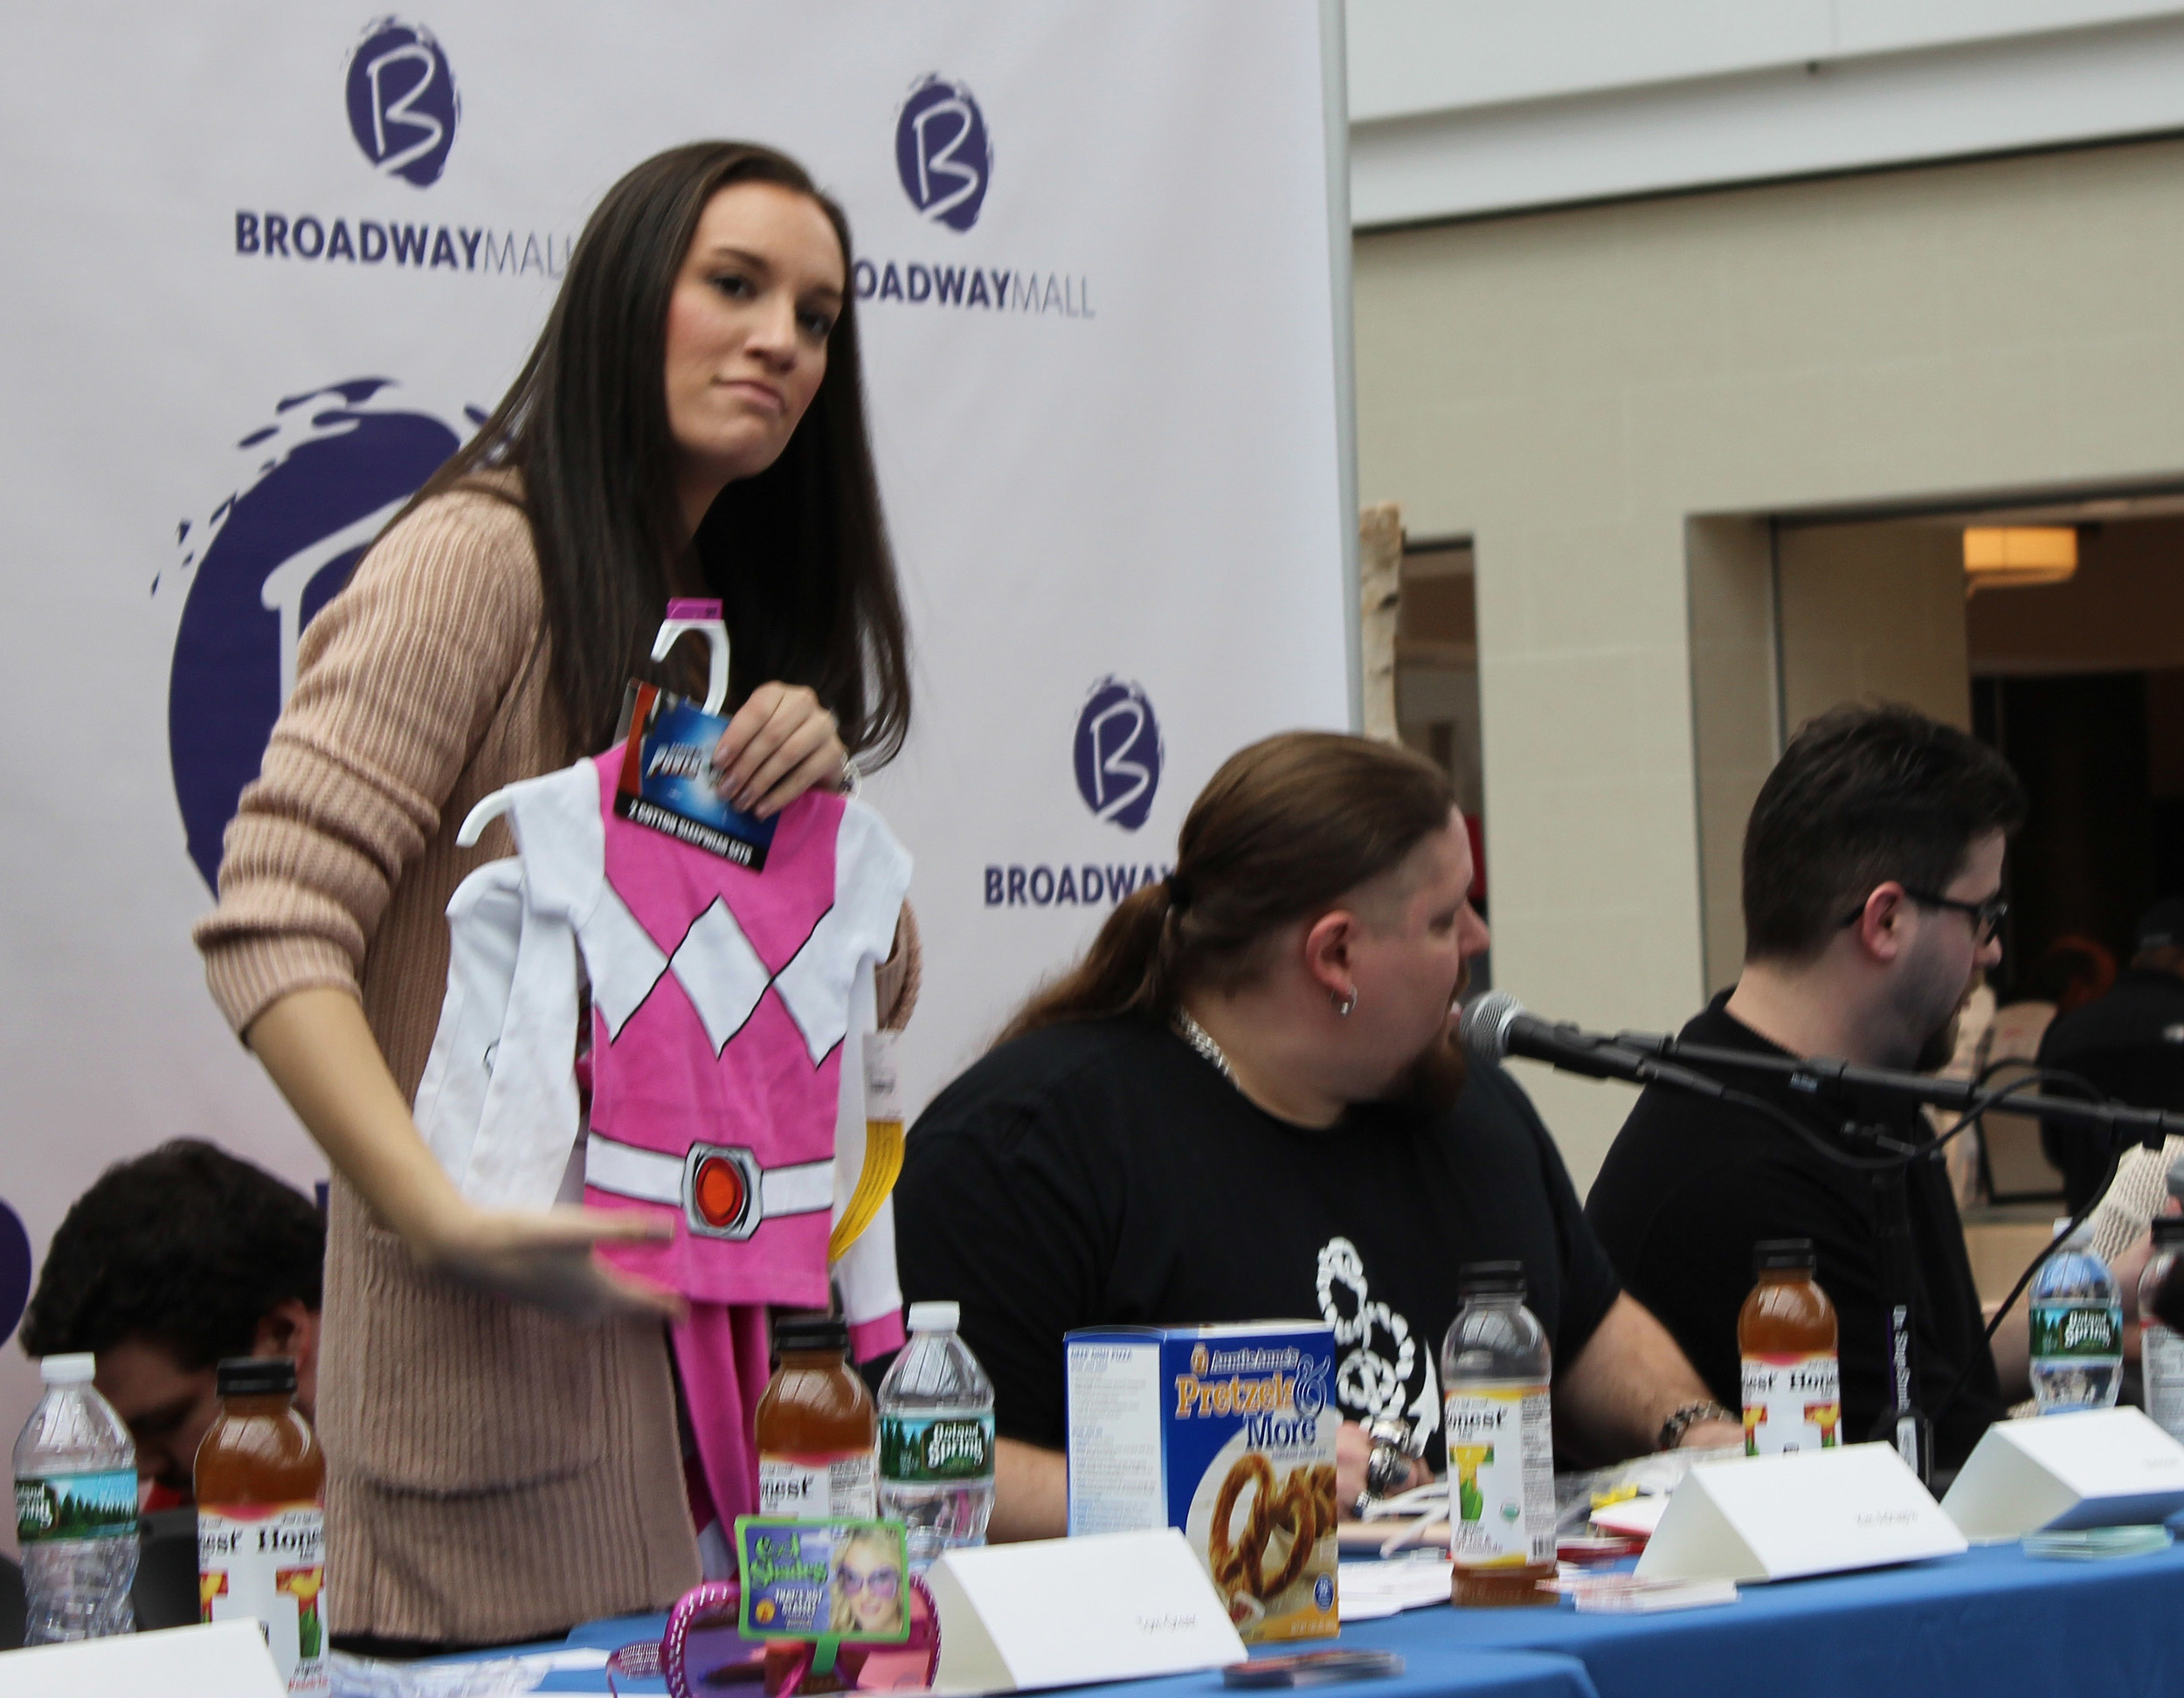 Grindhouse Radio co-host Kim Adragna, 22, of Merrick, prepared to give away a children's Power Rangers outfit to whoever could guess which actresses played the character in the original movies. The Grindhouse cast will host a pre-screening of the new film next month at the Bellmore Playhouse.